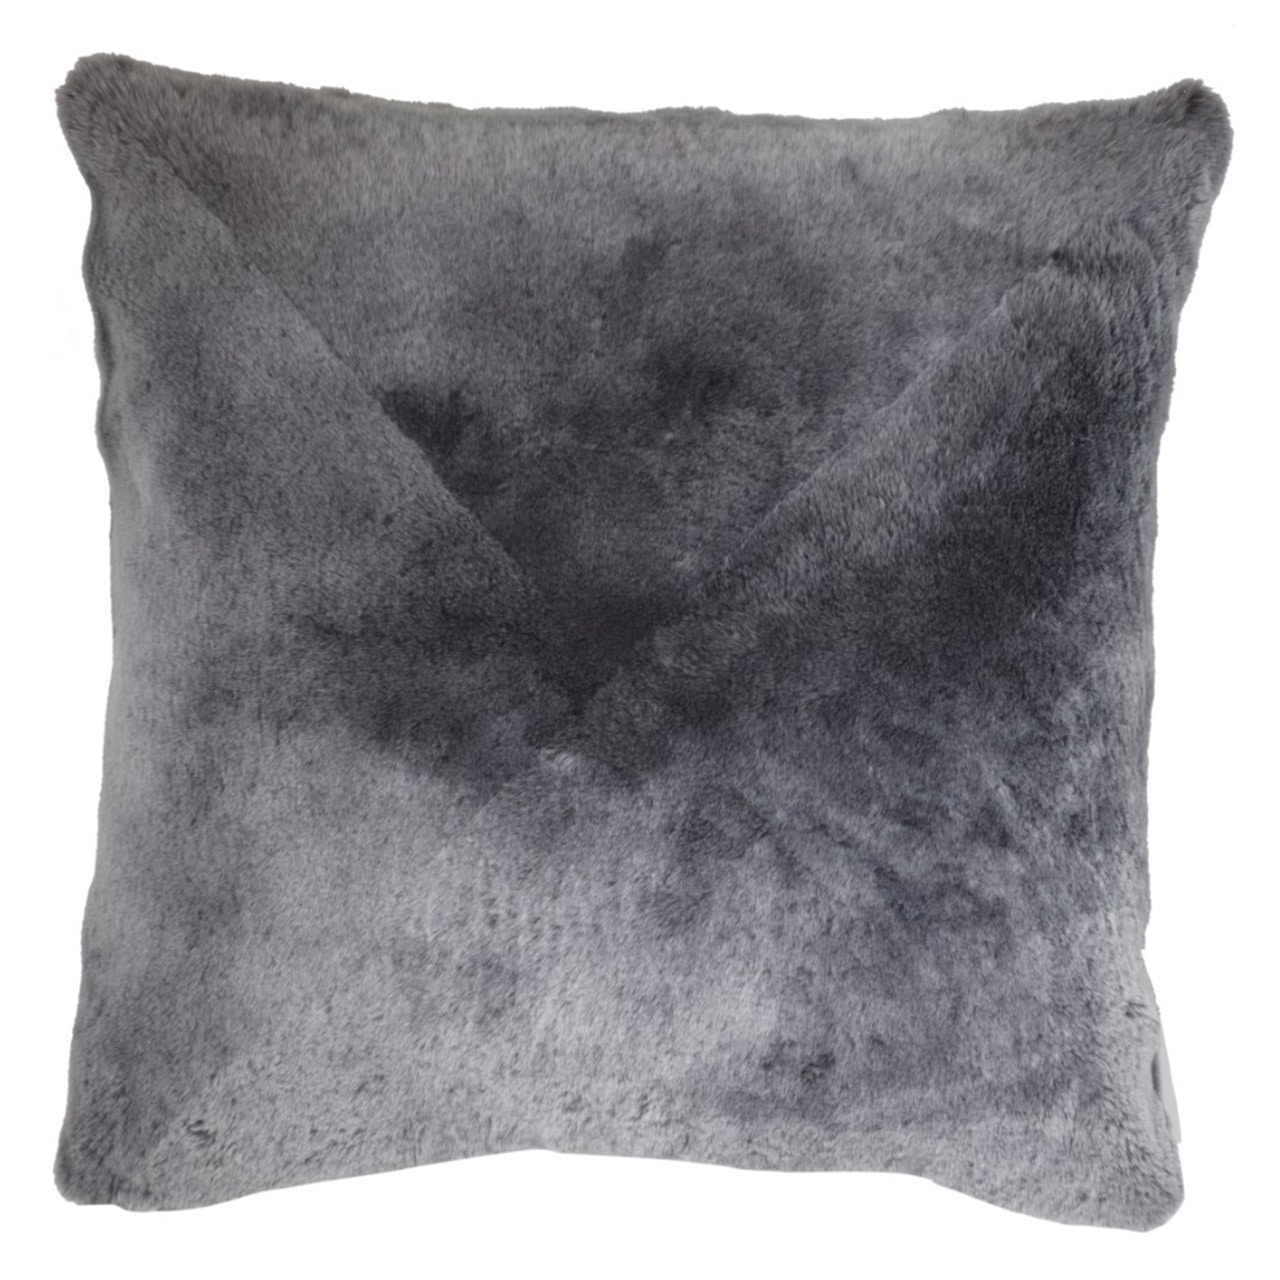 NEW-Shearling Pillow- Grey- 60x60cm (SPGREGR6060) - ANVOGG FEEL SHEARLING | ANVOGG